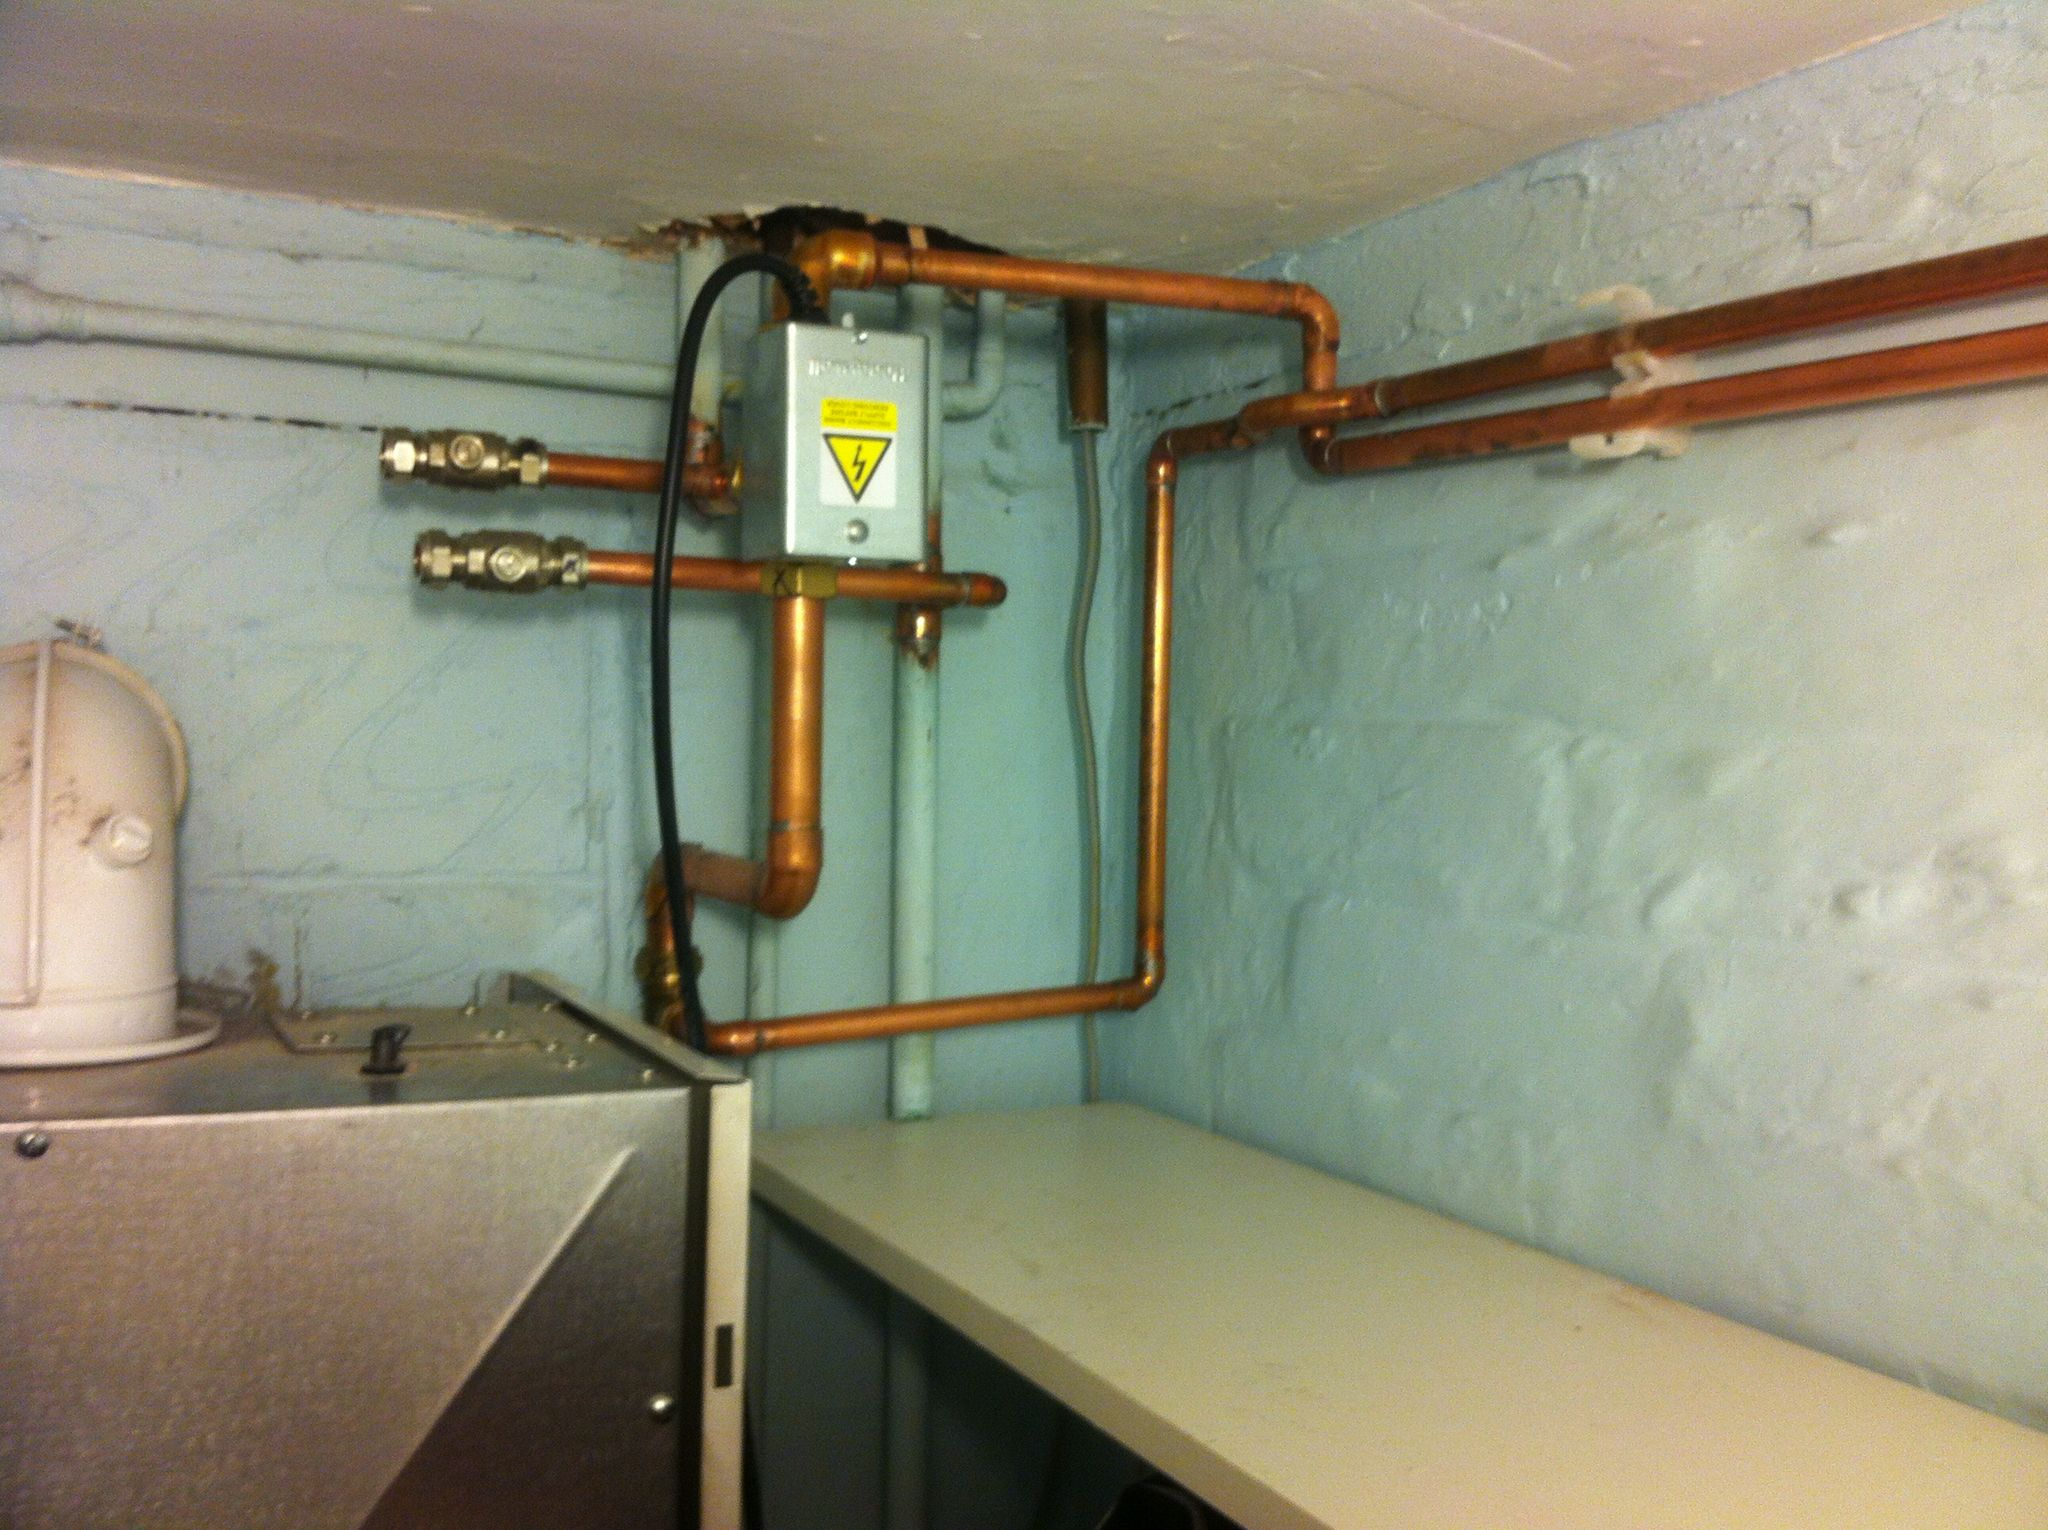 ...pipe work at boiler with diverter valve for re